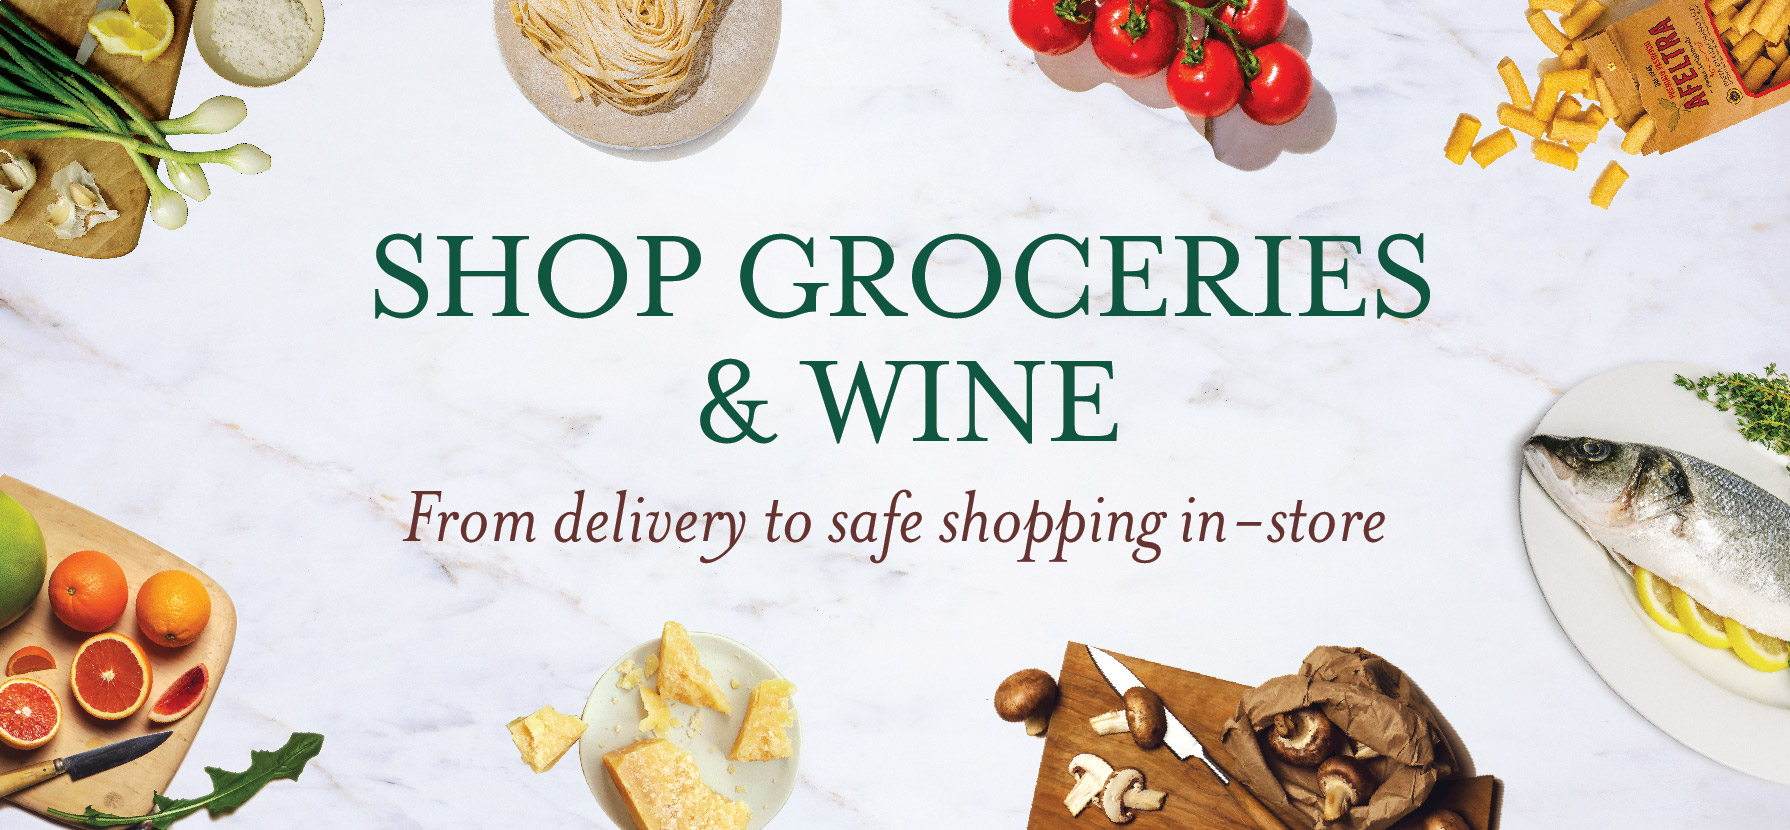 Grocery & Wine Delivery